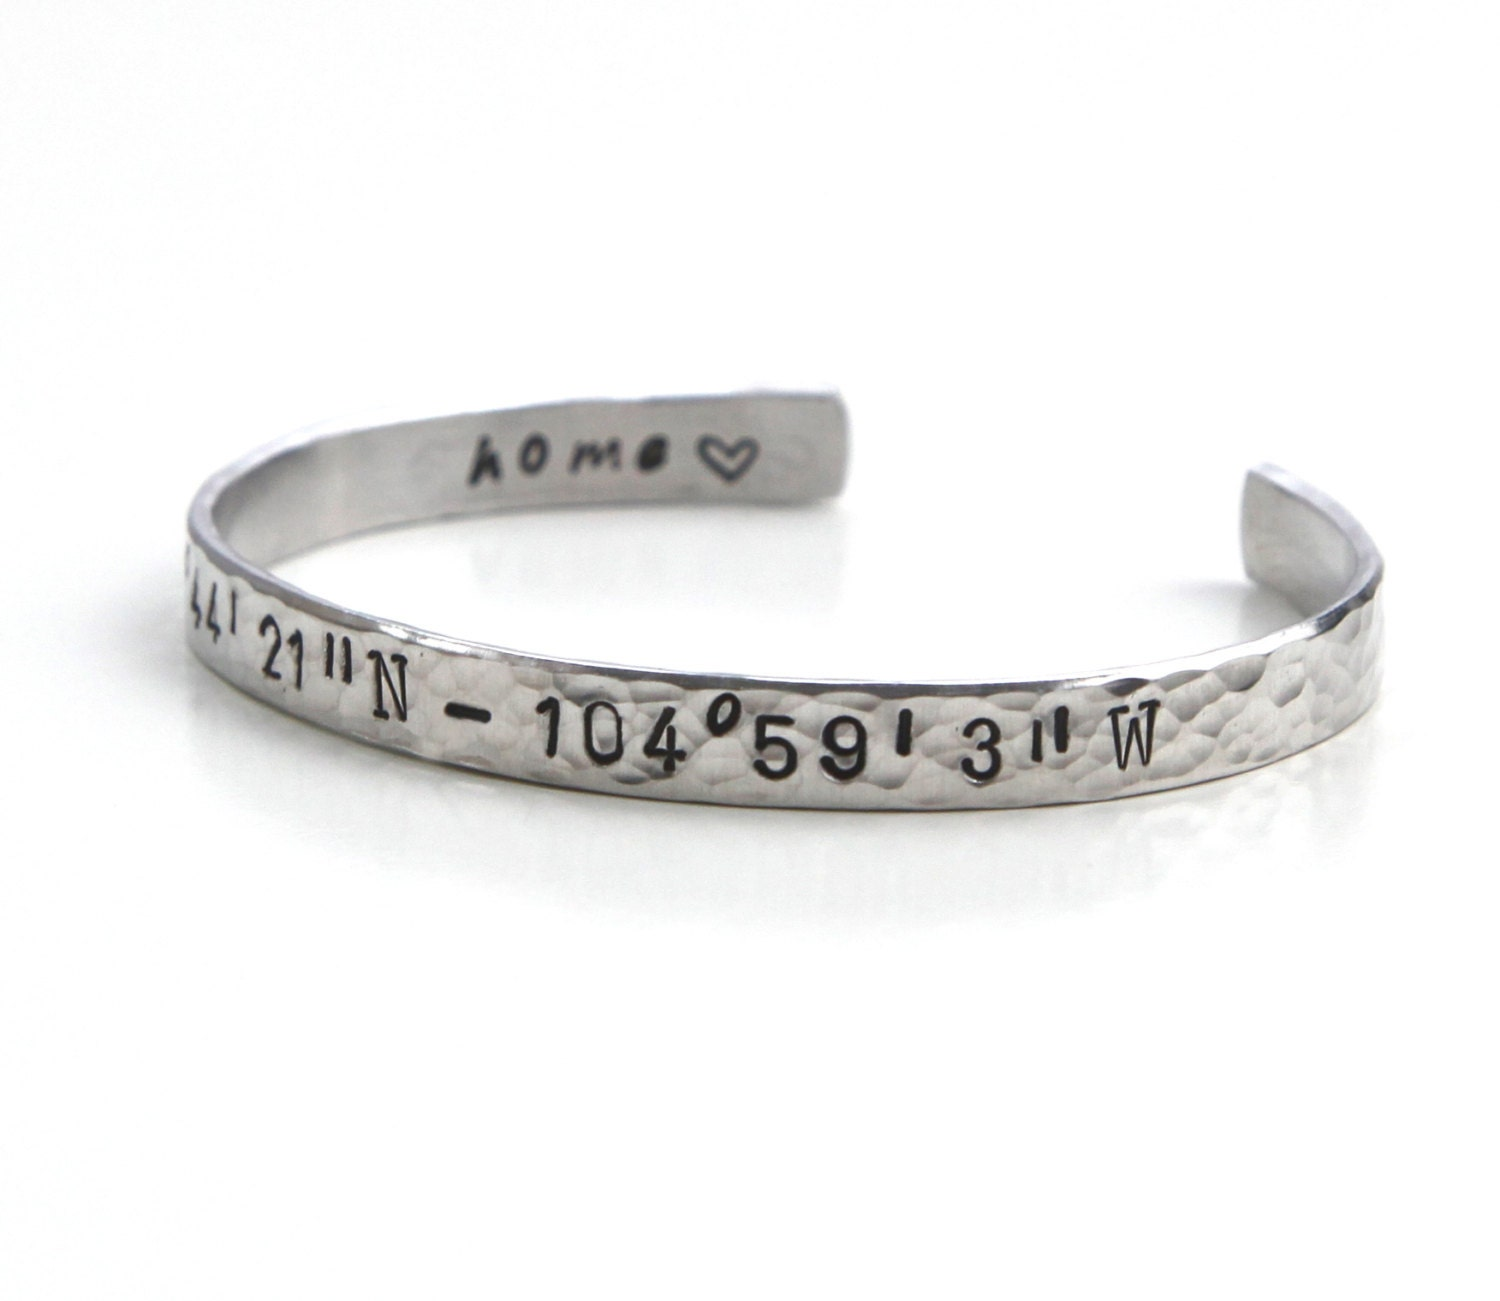 longitude il bracelet sm latitude cuff coordinate location product fullxfull made special personalized coordinates